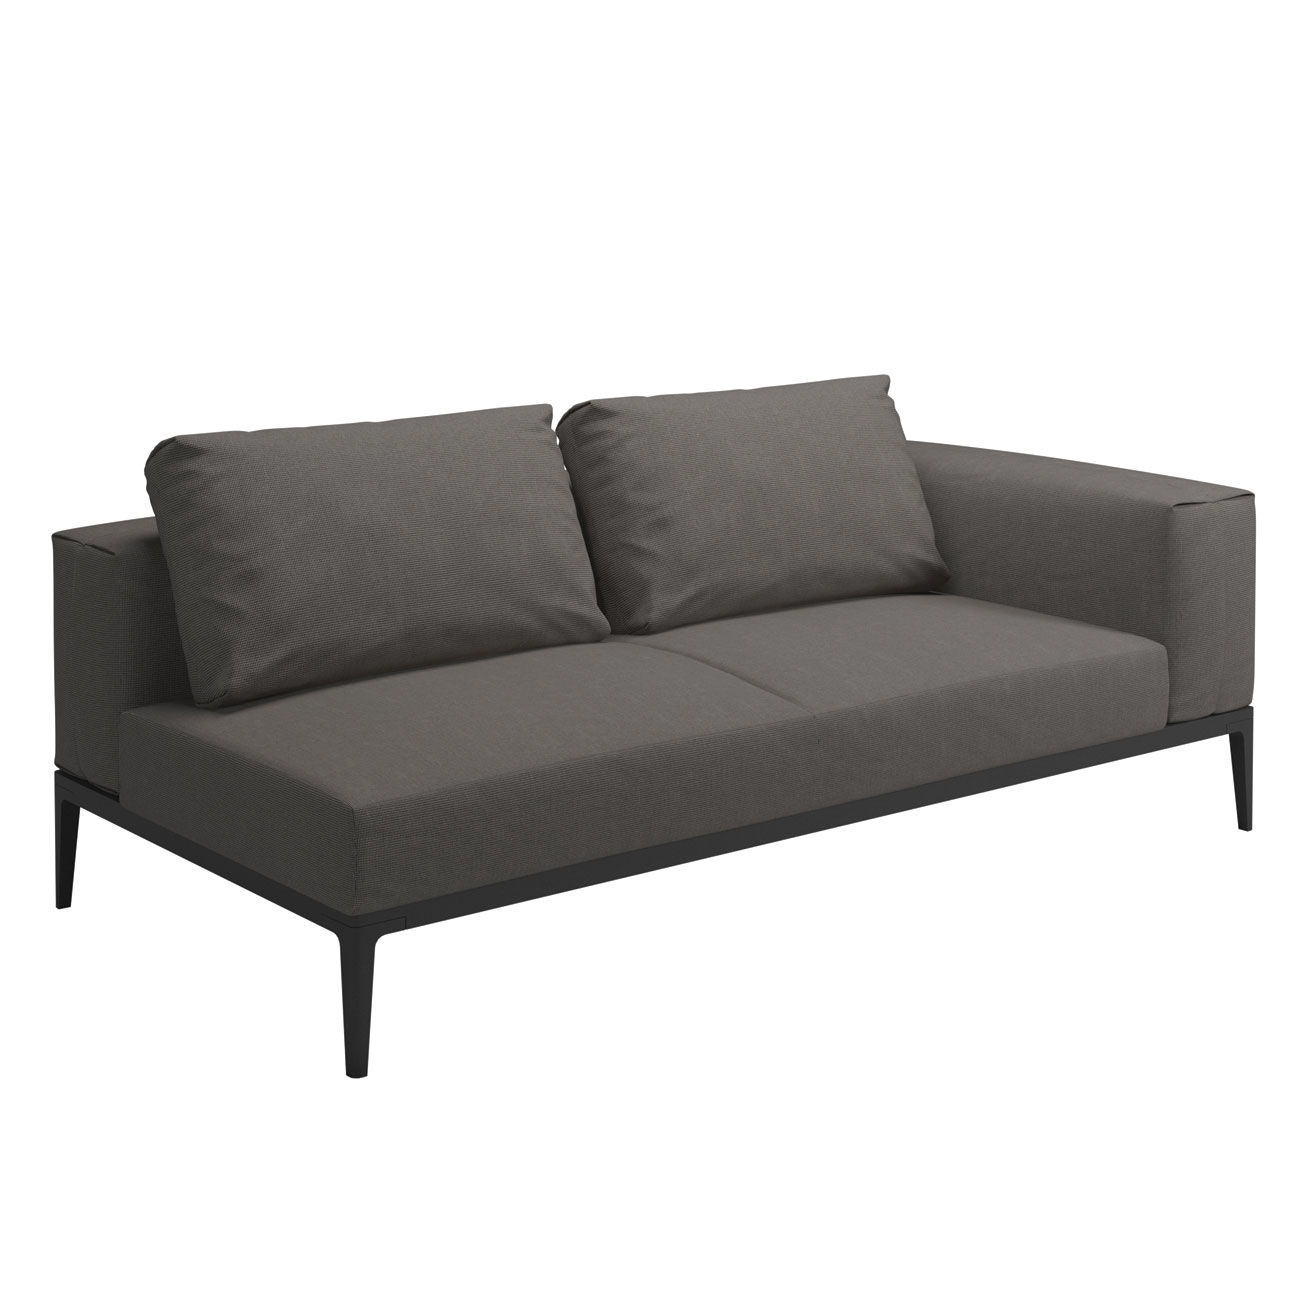 Gloster grid modular sofa end unit luxury outdoor living for Sofa modular gris